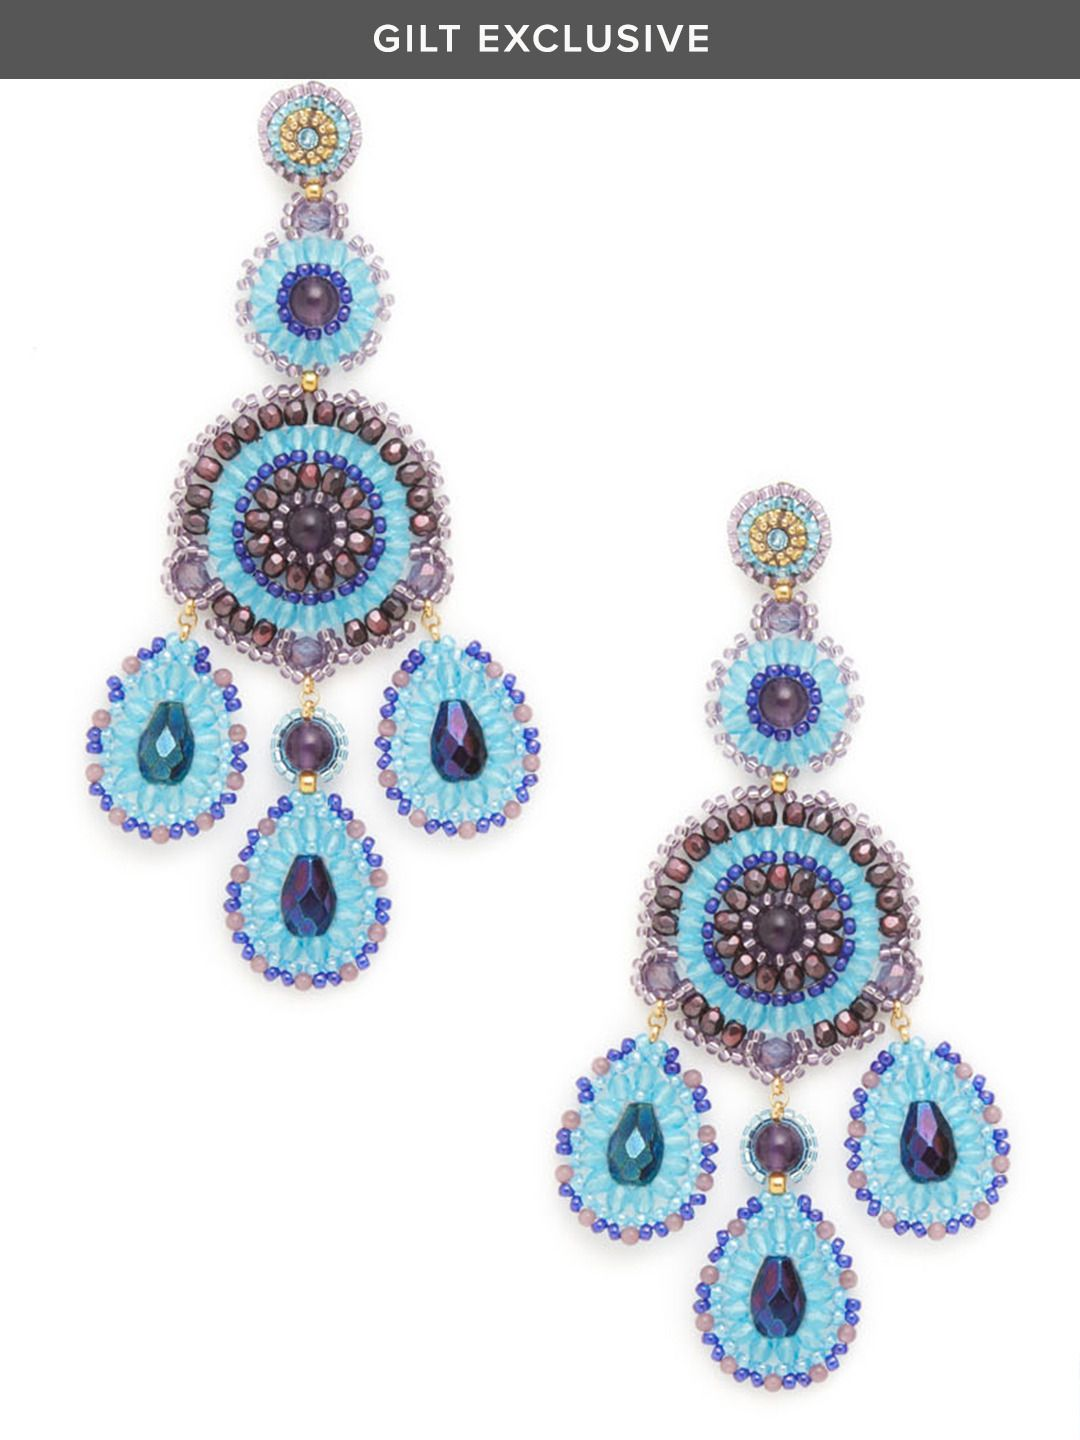 Amethyst Blue Oversized Chandelier Earrings By Miguel Ases At Gilt